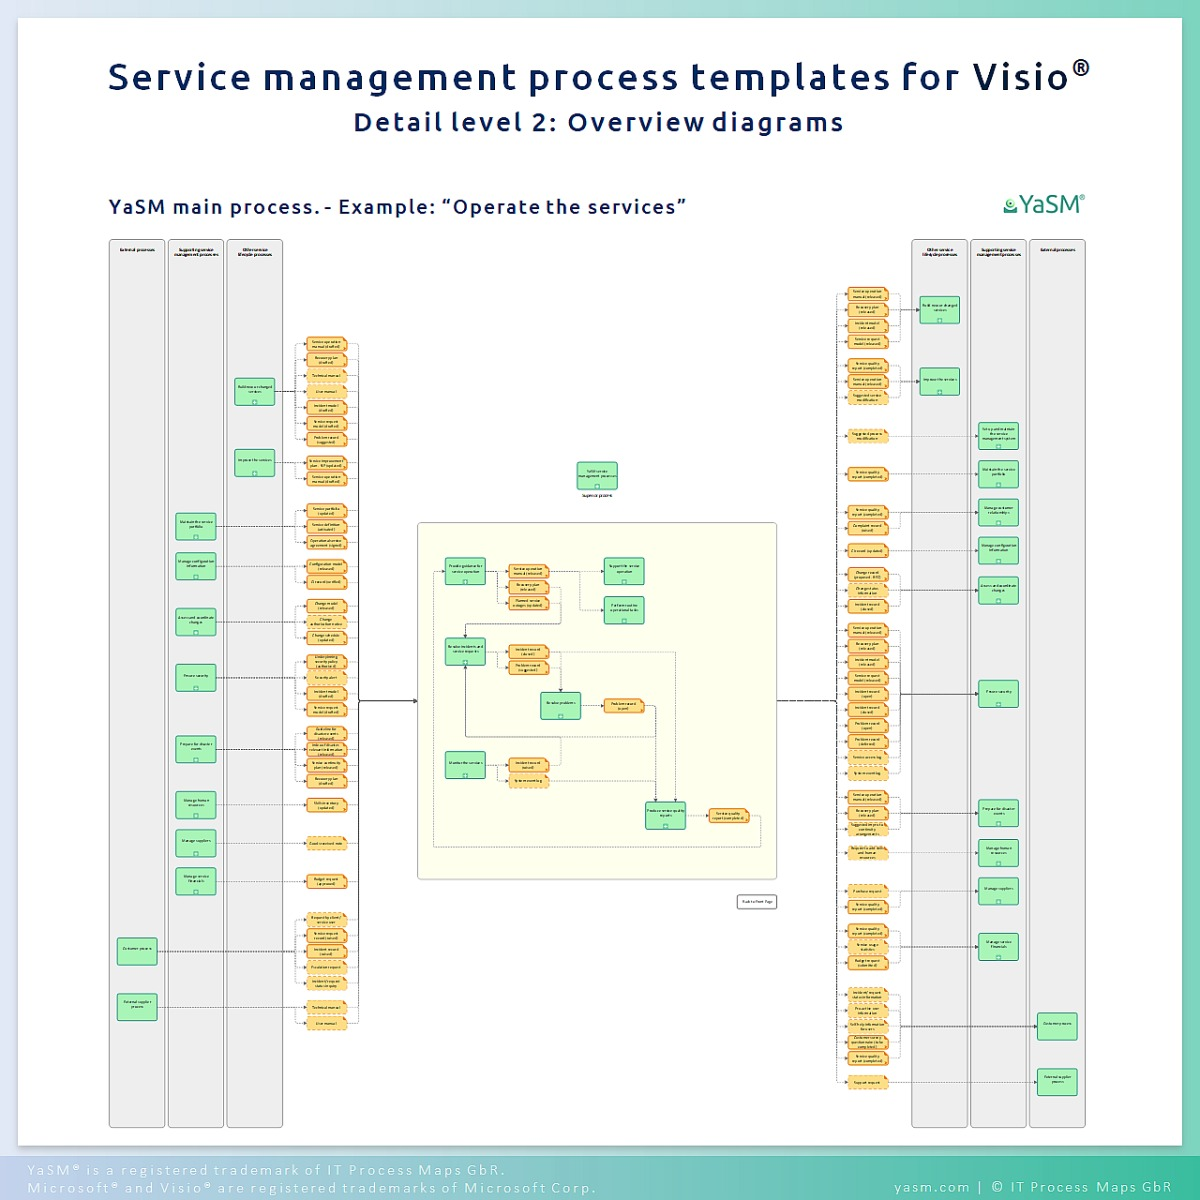 The YaSM Process Map for Visio